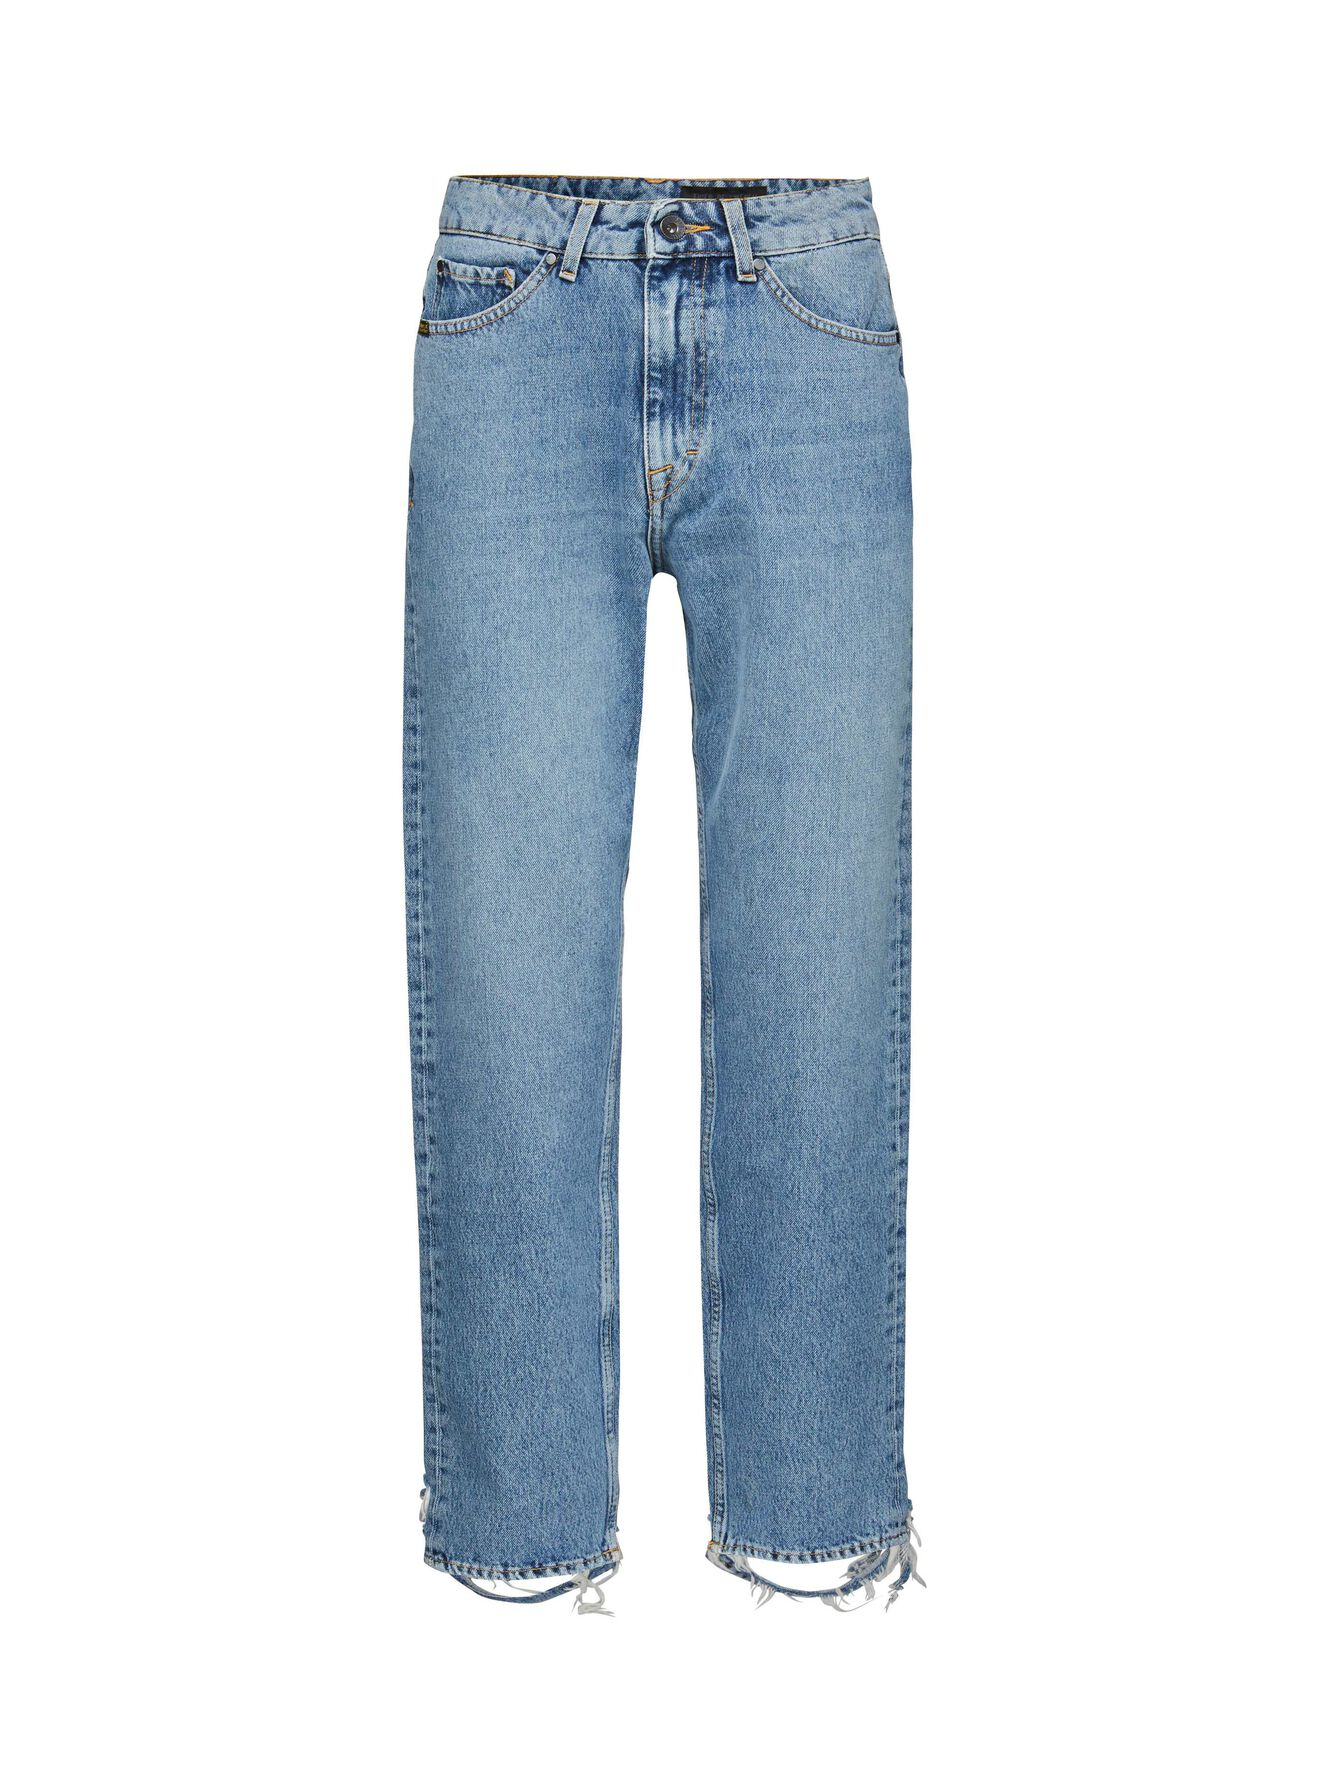 Dropped Jeans in Light blue from Tiger of Sweden